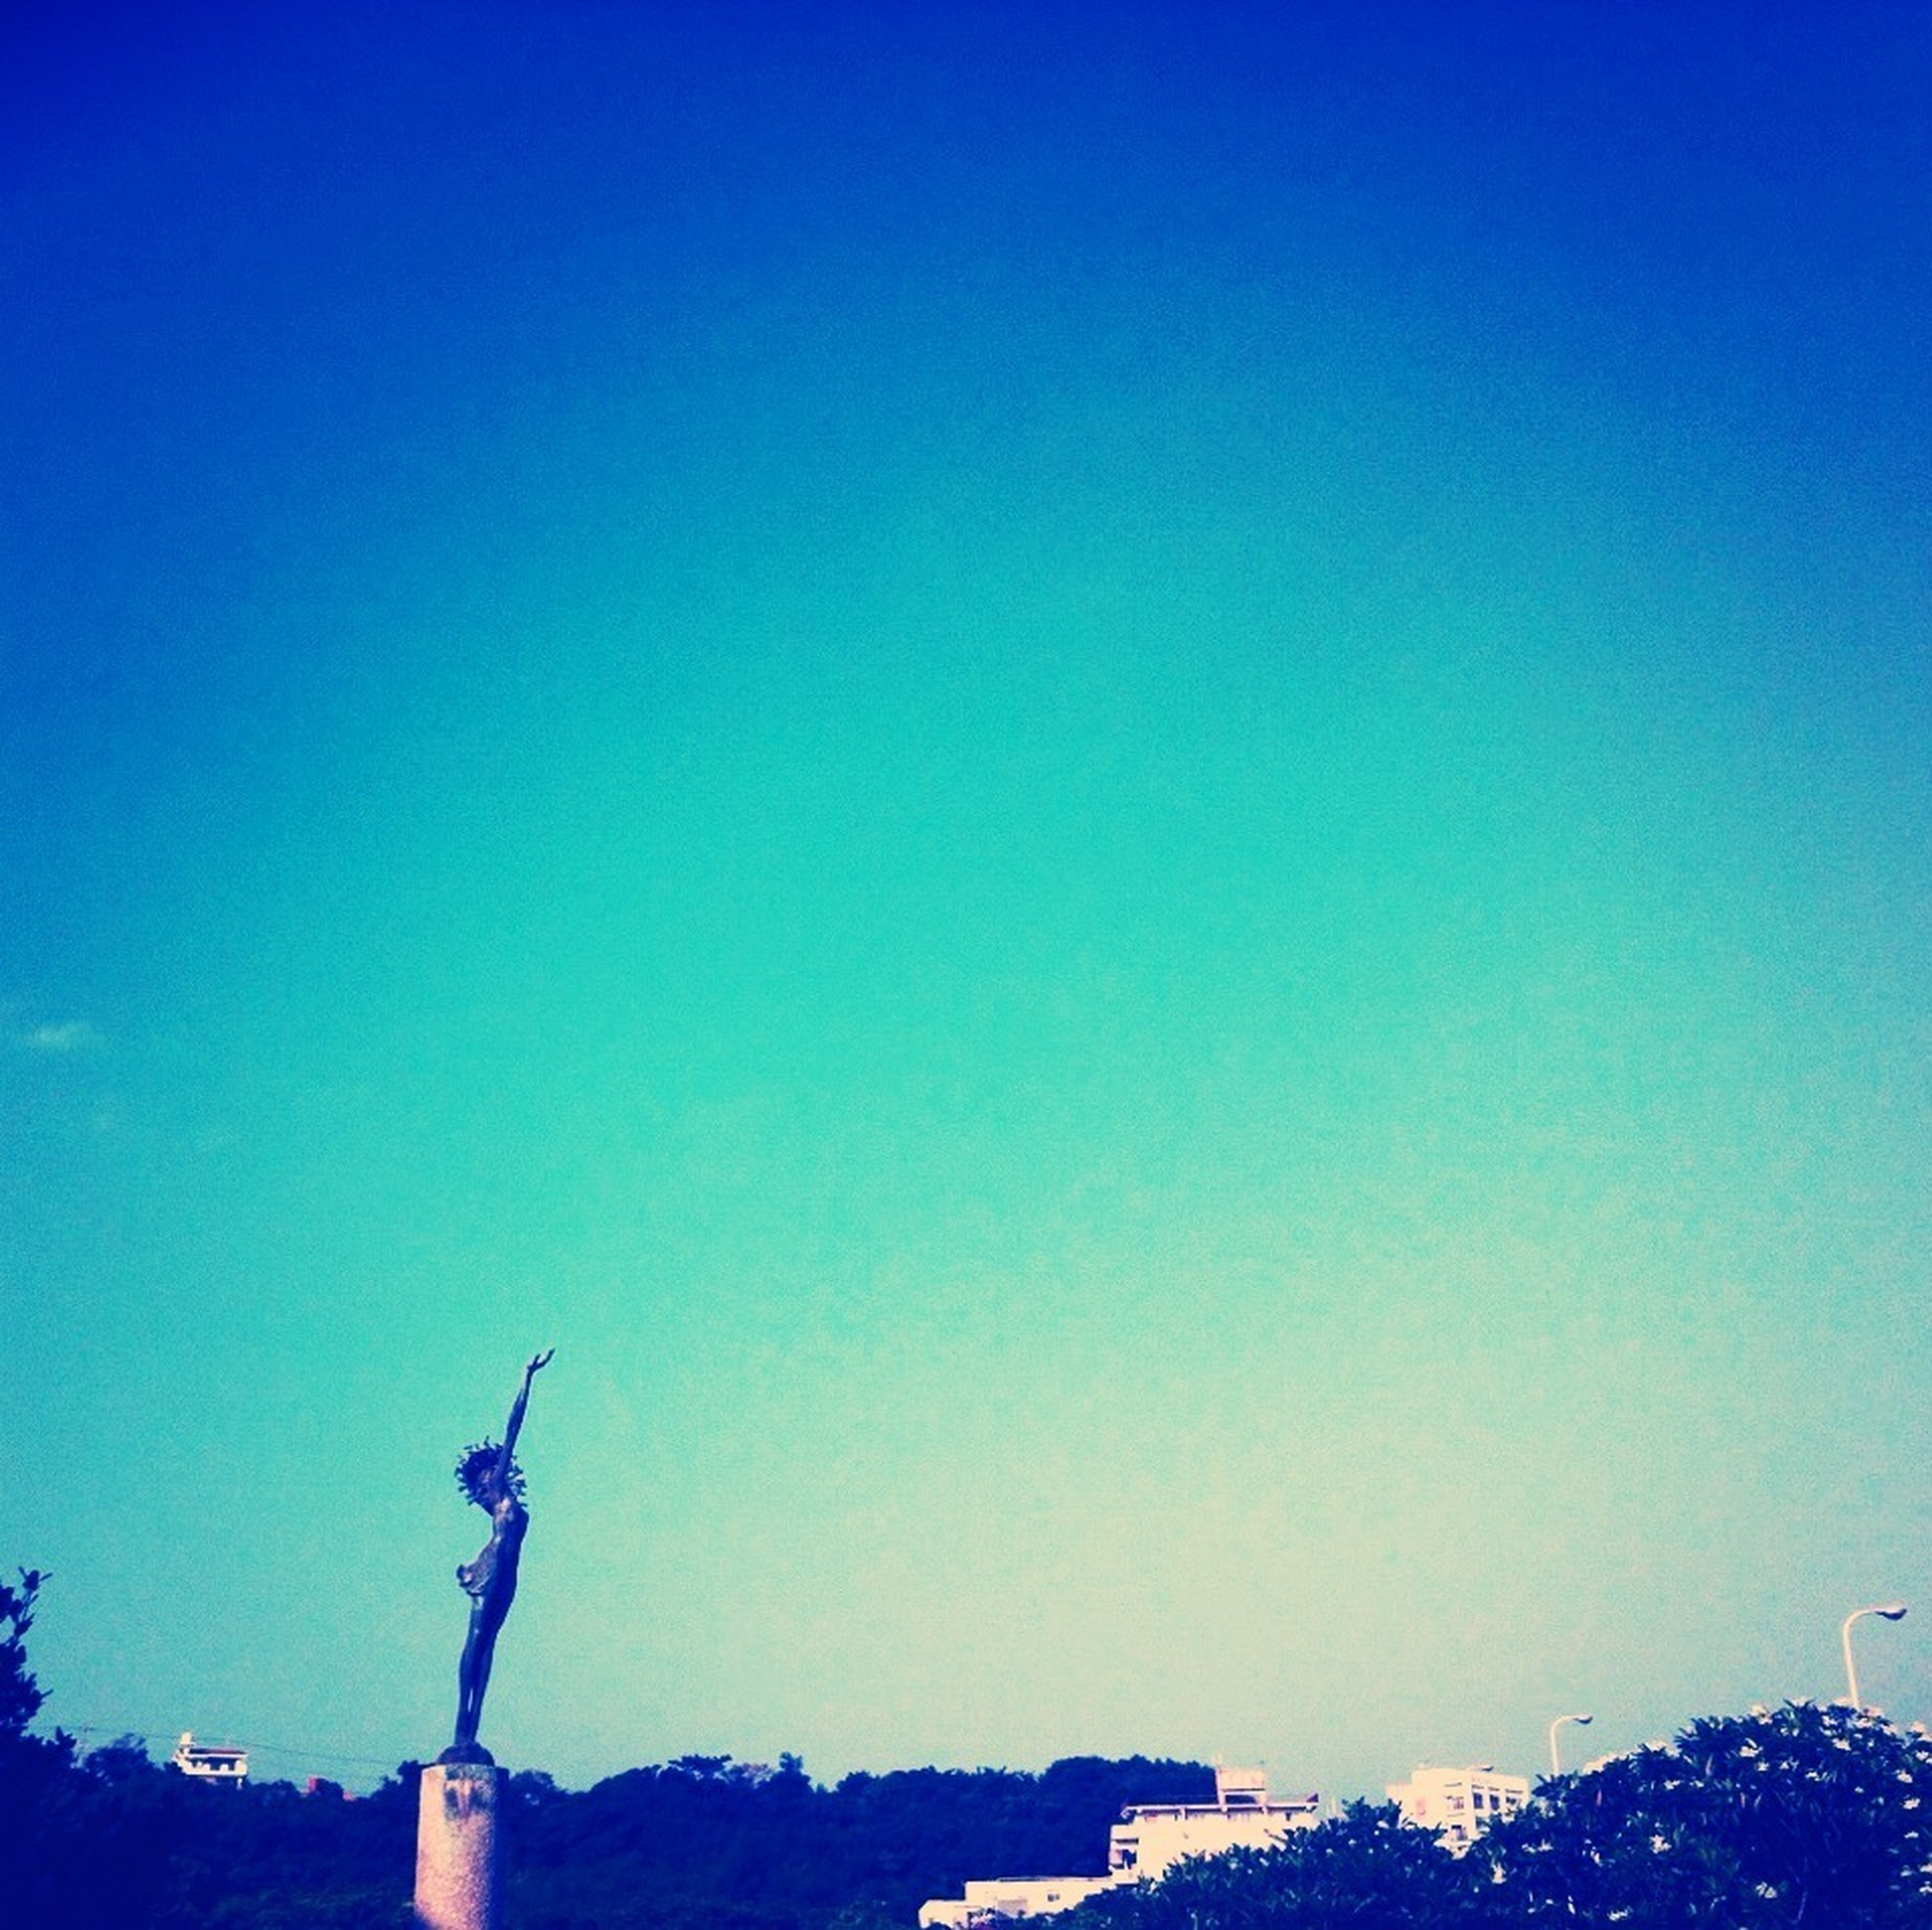 statue, sculpture, human representation, copy space, blue, clear sky, low angle view, art and craft, art, creativity, animal representation, built structure, outdoors, silhouette, high section, architecture, no people, day